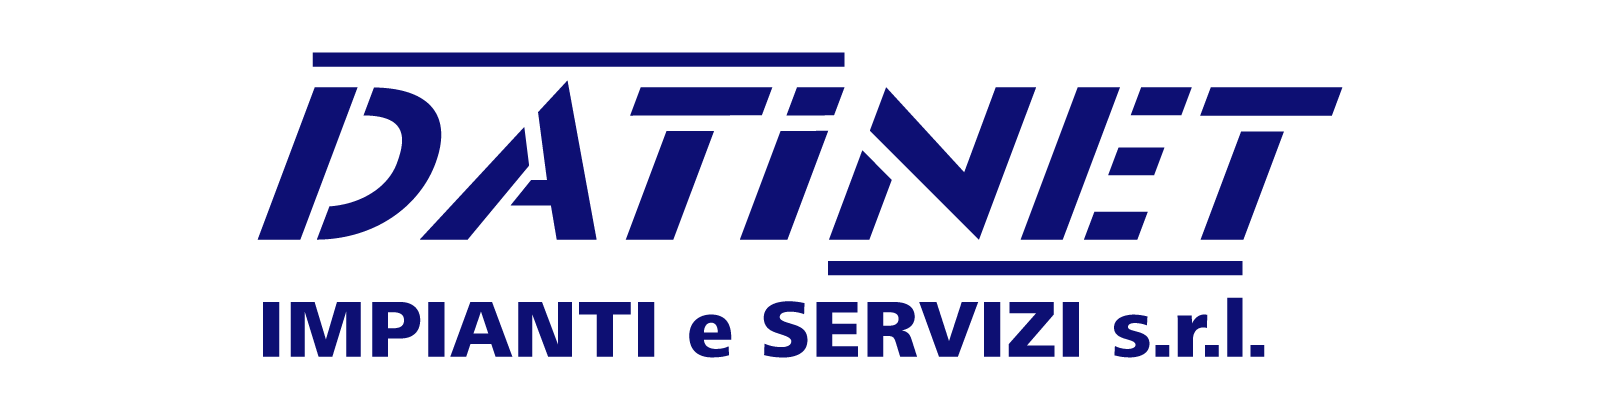 datinet-official_logo